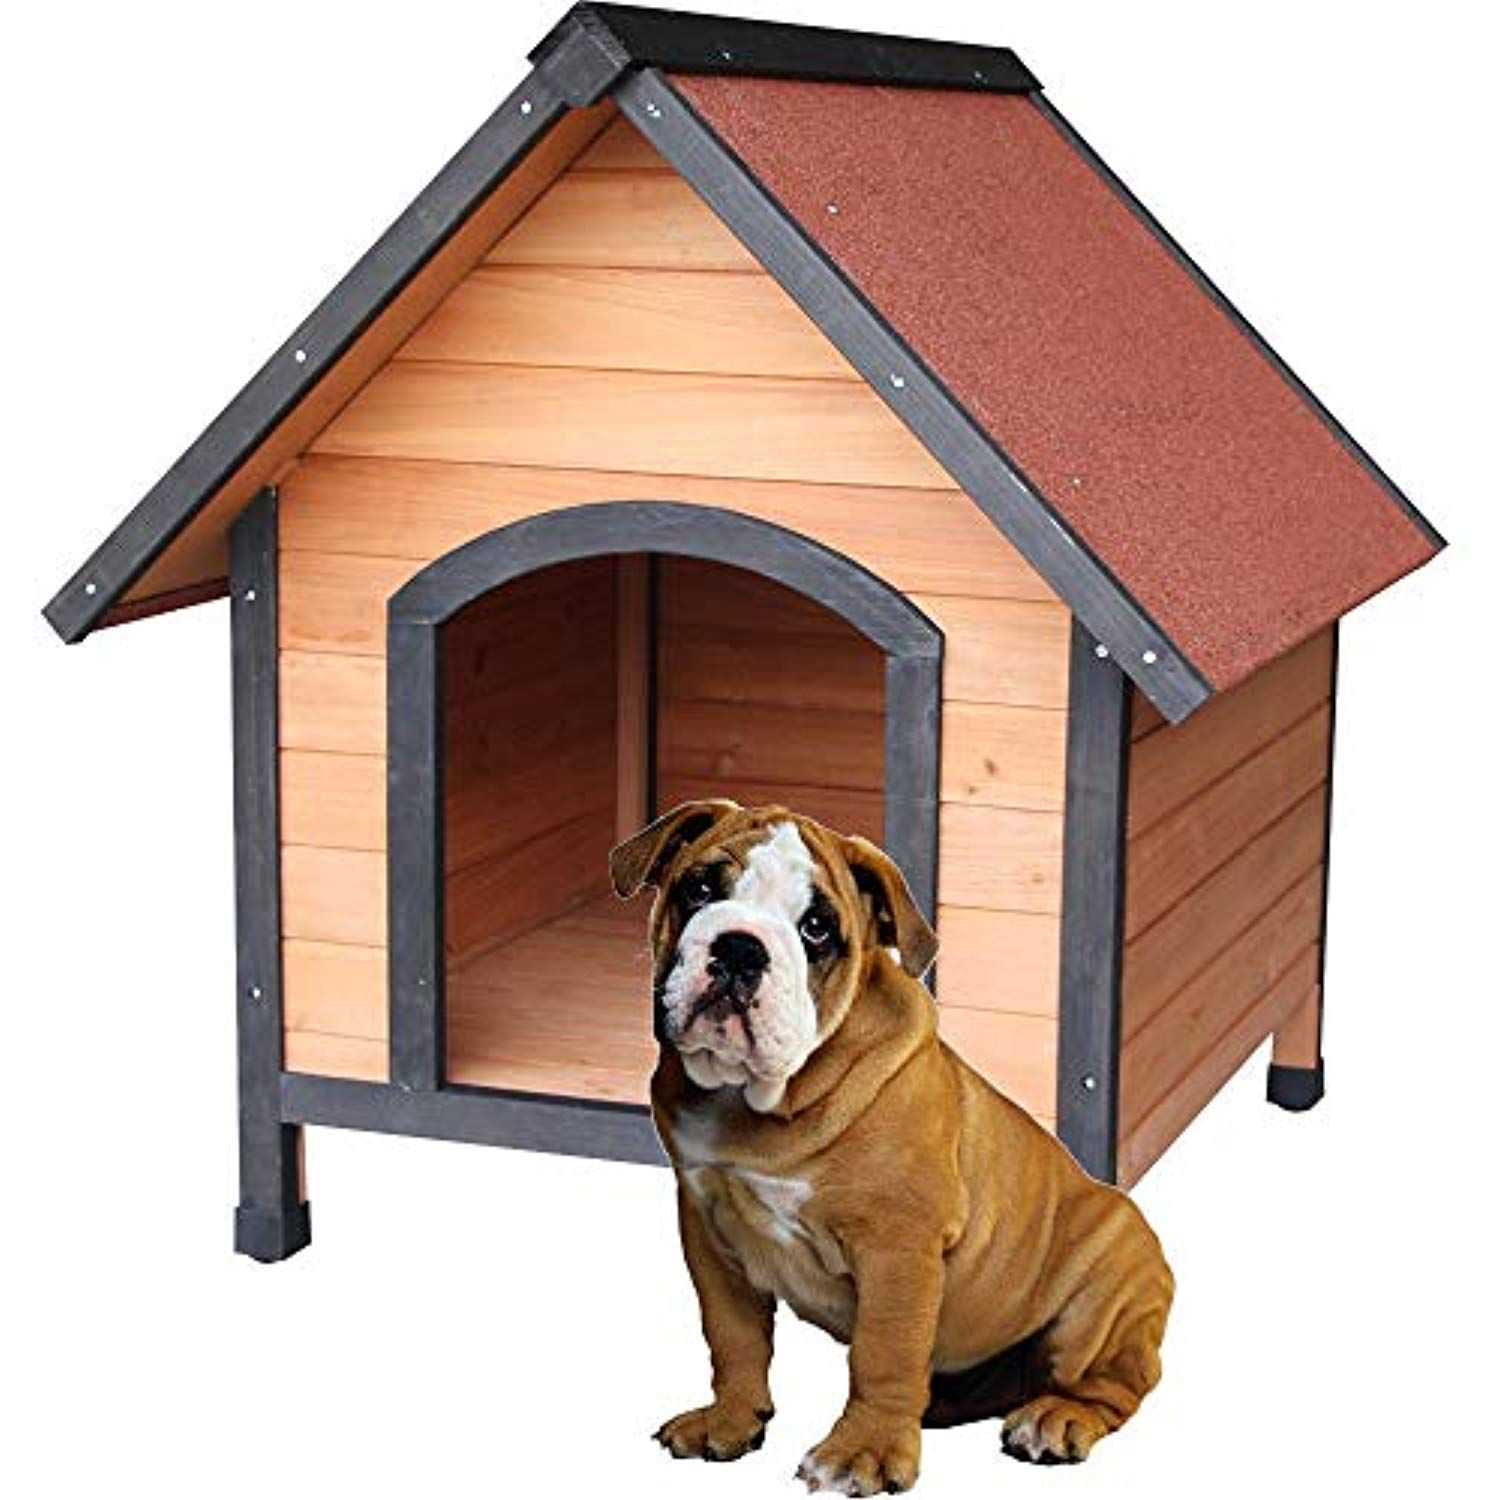 Aromzen New Waterproof Play Pet Dog House Bed Wood Shelter Home